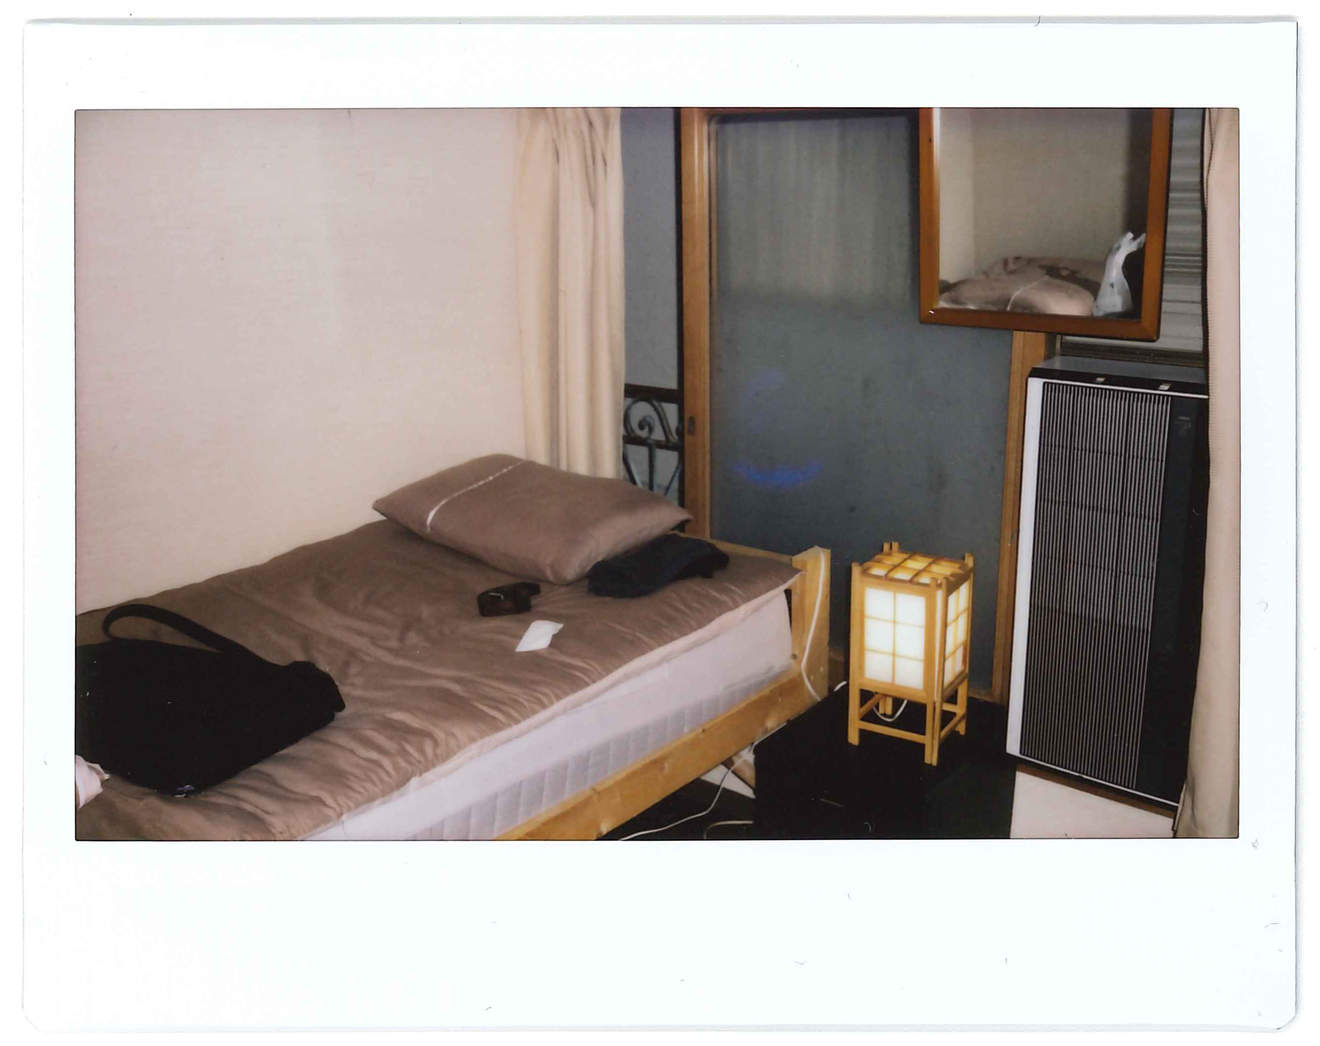 "Instant photo for Day 1 of ""A Year in an Instant"" by Nuno Coelho Santos"